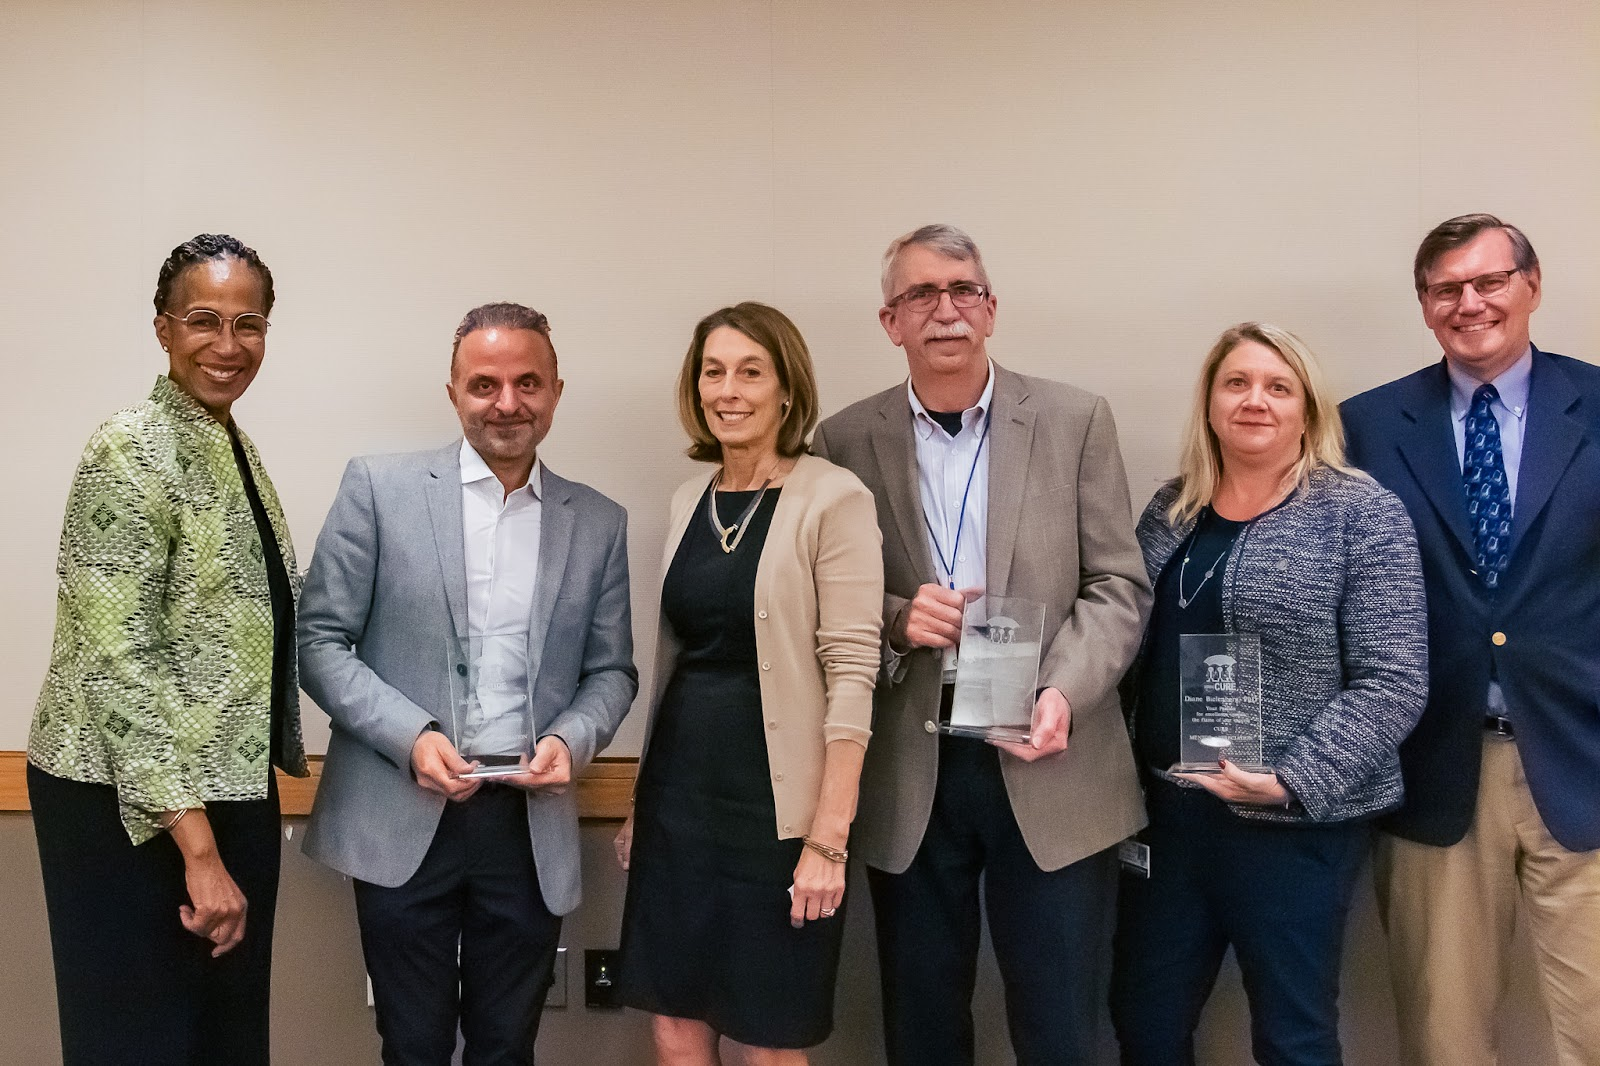 Left to Right: Karen Burns White;Bakkhos Tannous, PhD (MGH); Laurie Glimcher, MD (DFCI); David Hill, PhD (DFCI); Diane Bielenberg, PhD (BCH) and James DeCaprio, MD (DFCI). Photo by Katharin Shaw.